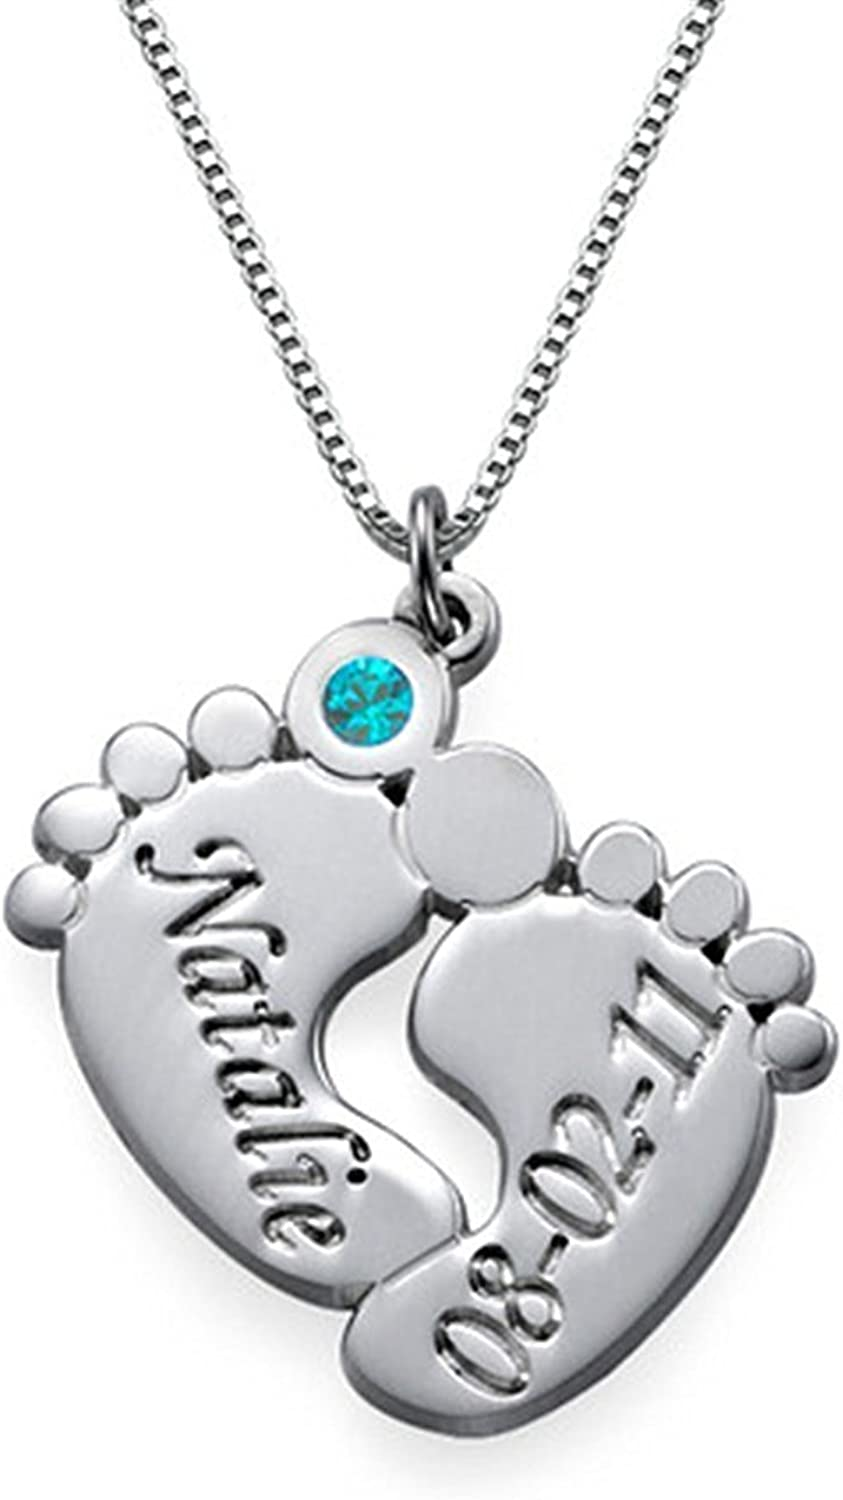 Custom Pendant Gift for Mom Junmei Personalized Two Heart Engraved Necklace with CZ Birthstones